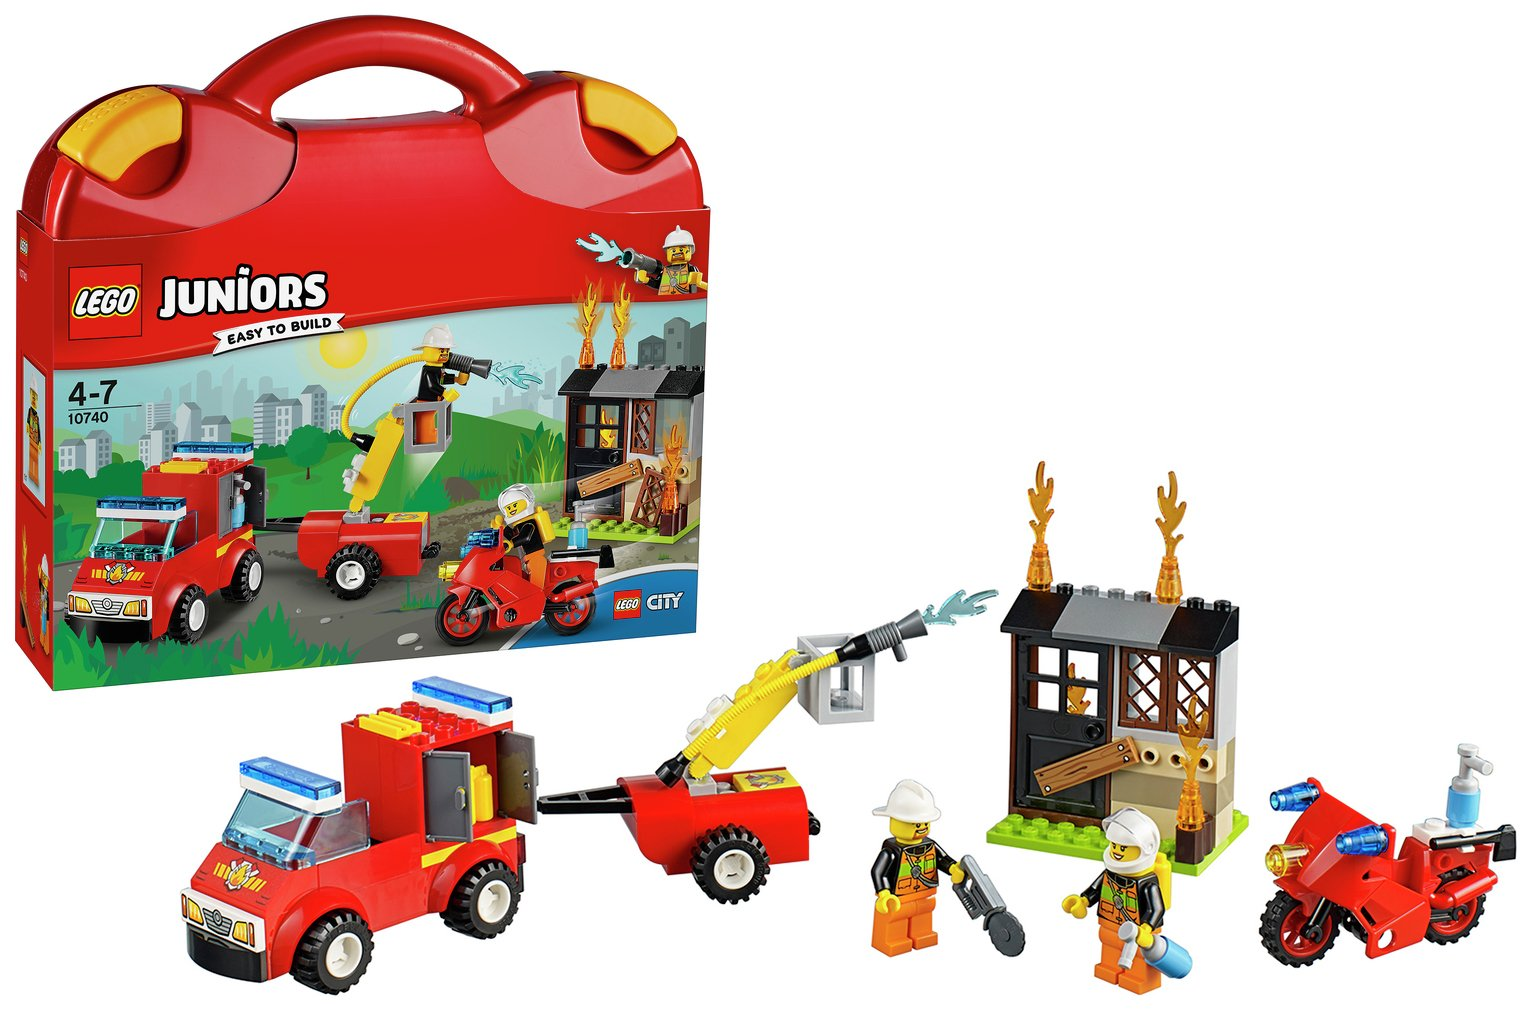 LEGO Juniors Fire Patrol Suitcase - 10740